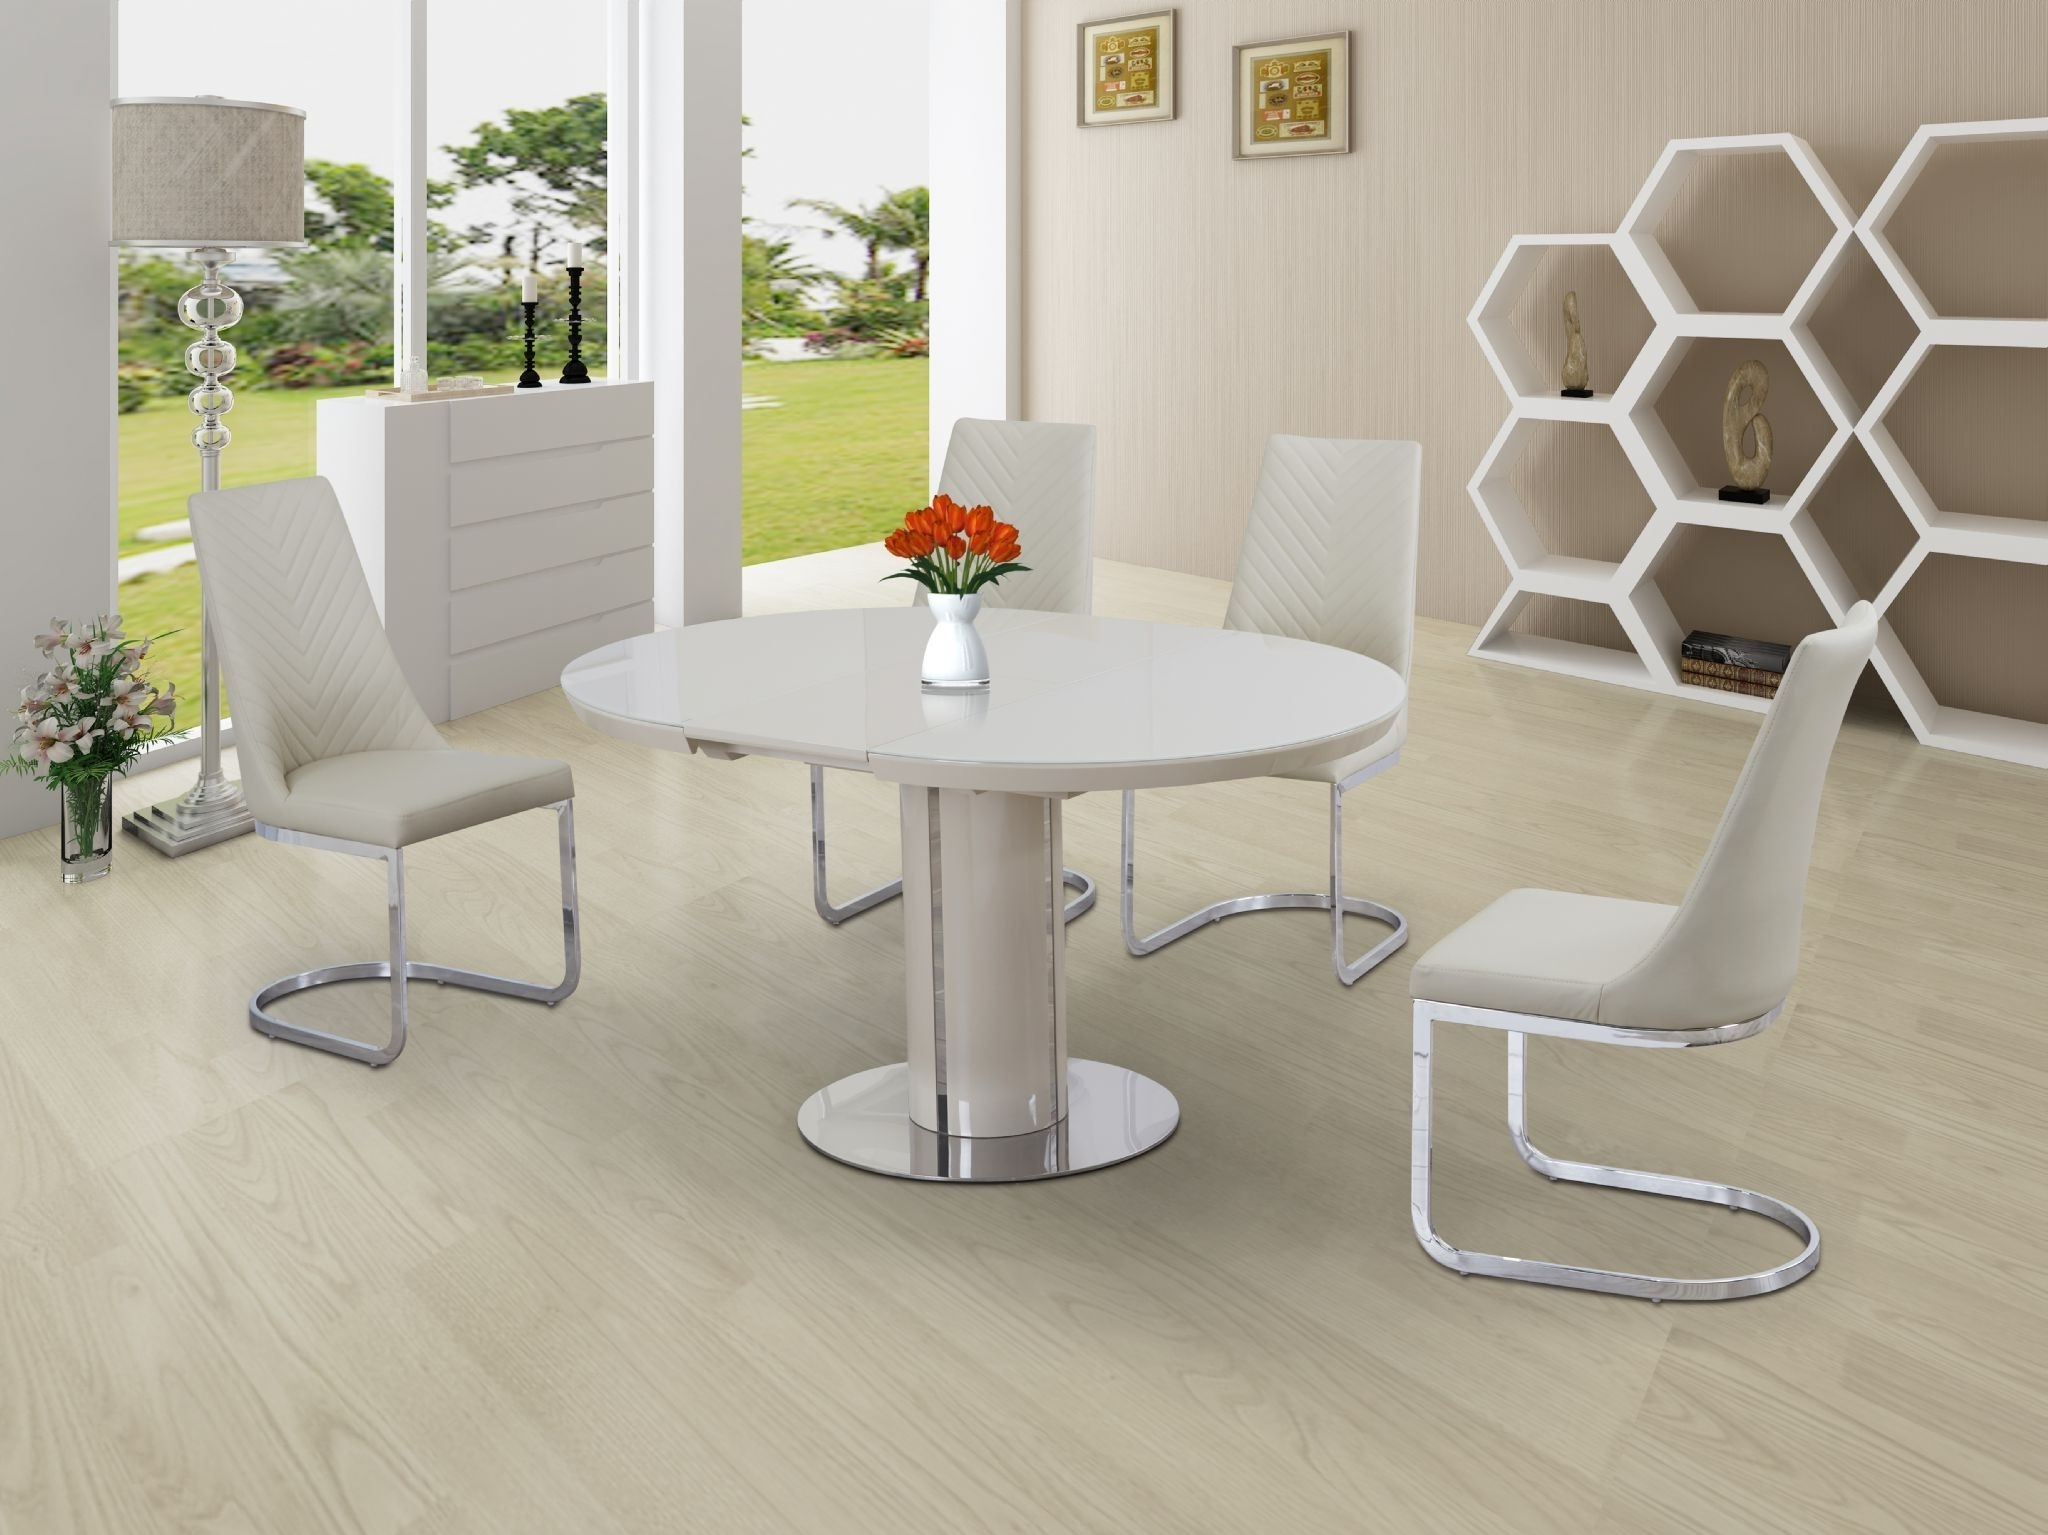 Most Popular Cream High Gloss Dining Tables In Buy Annular Cream High Gloss Extending Dining Table (View 1 of 25)